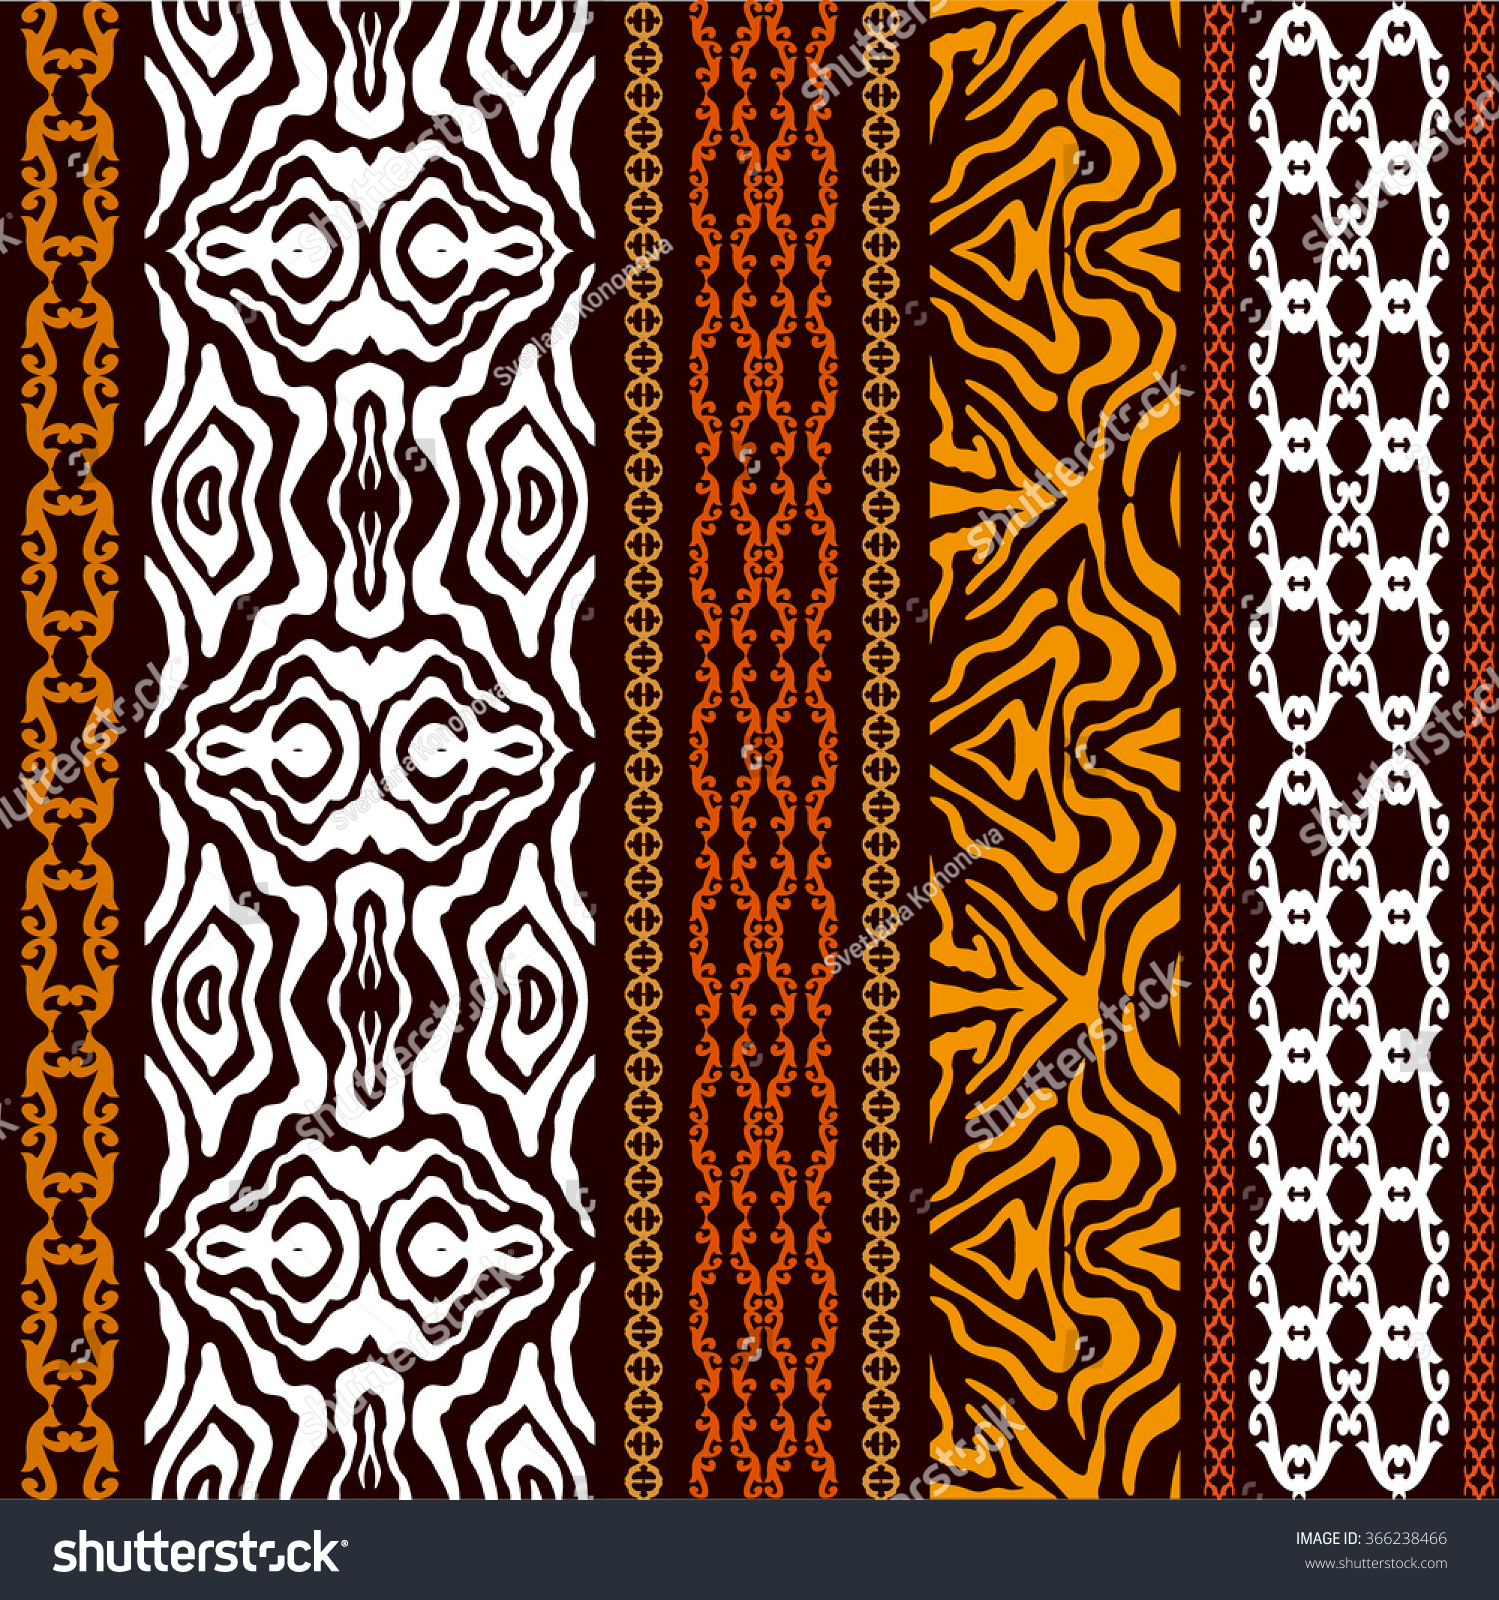 Vintage Seamless Wallpaper With Ethnic Motifs And Tiger Print Abstract Geometrical Vector Pattern Art